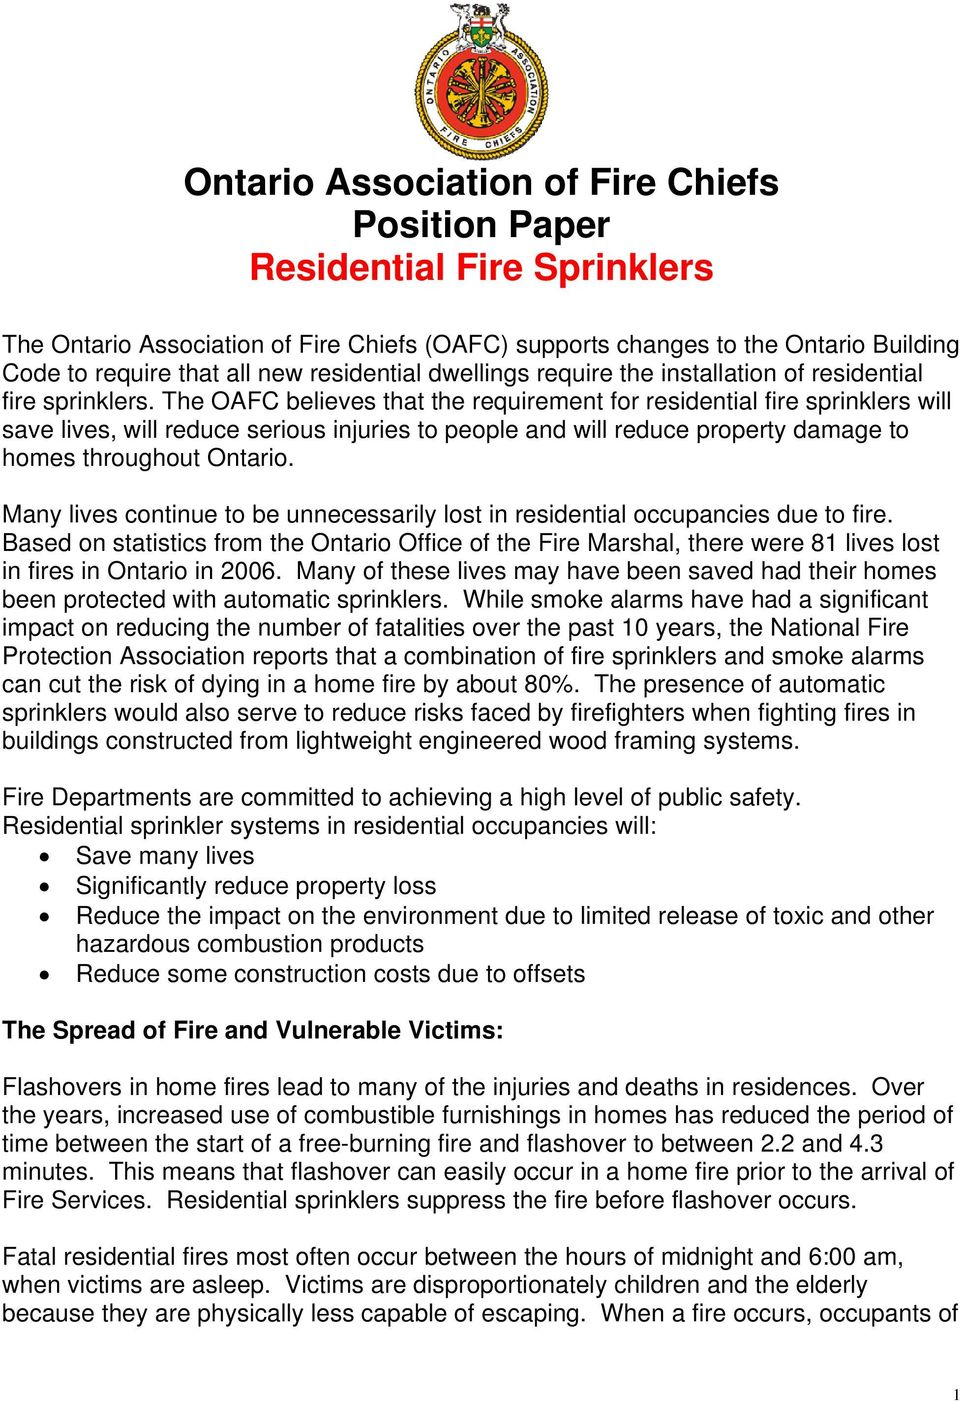 The OAFC believes that the requirement for residential fire sprinklers will save lives, will reduce serious injuries to people and will reduce property damage to homes throughout Ontario.